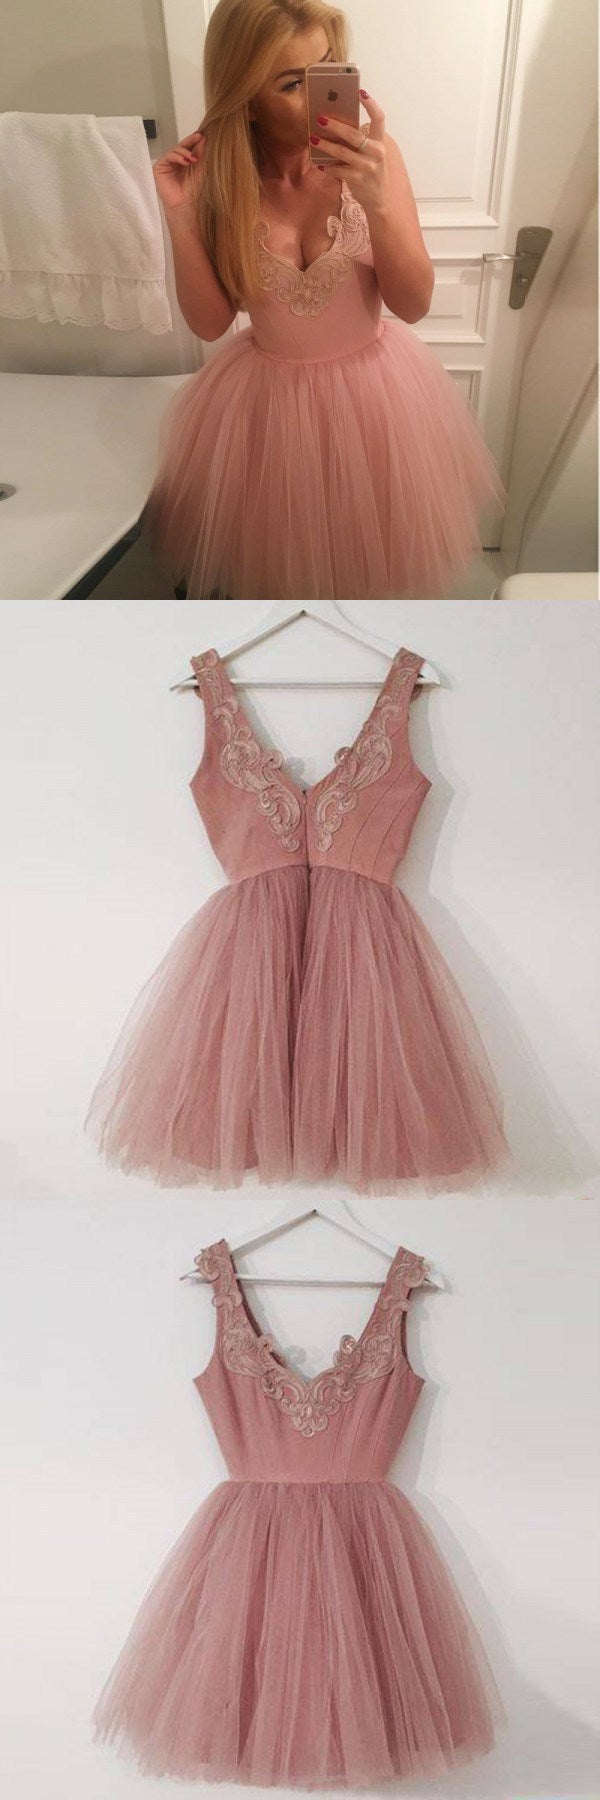 A-Line V-Neck Short Blush Appliques Homecoming Dress , Short Bridesmaid Dresses, WG102